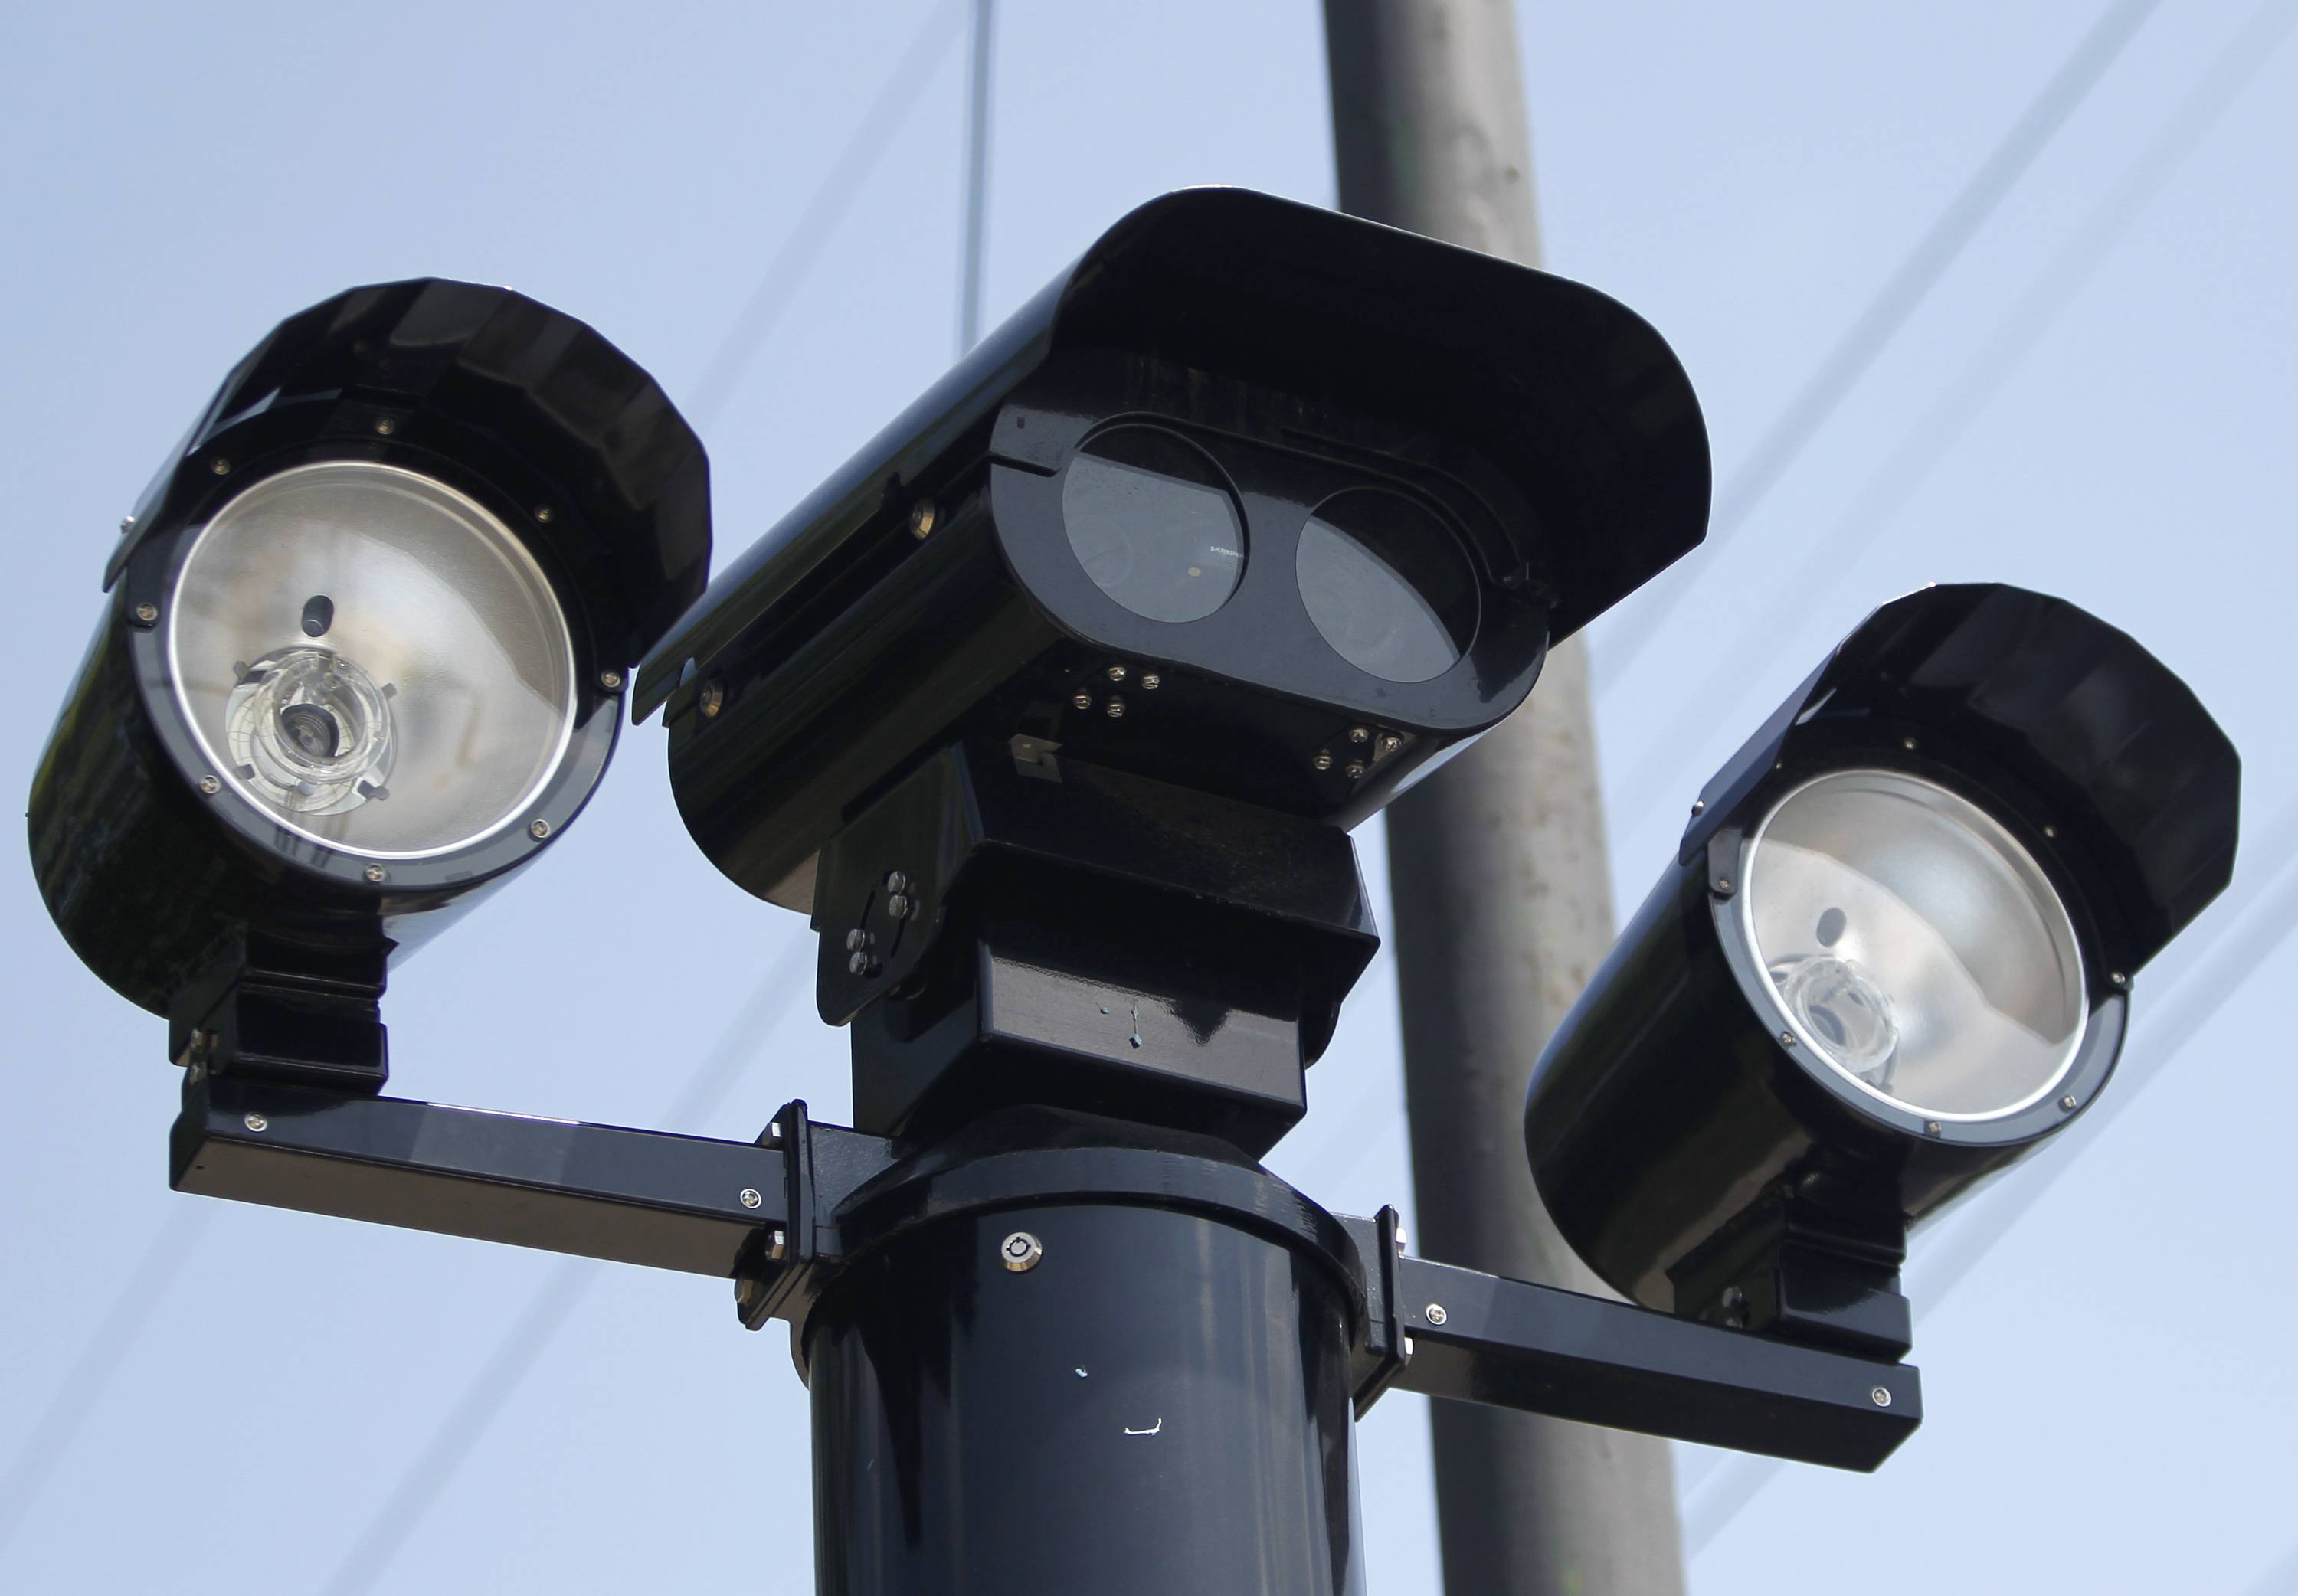 Chicago Mayor Rahm Emanuel said steps will be taken to determine if anyone fined for receiving red-light camera tickets deserve their money back after an unexplained spike in citations given out to drivers.